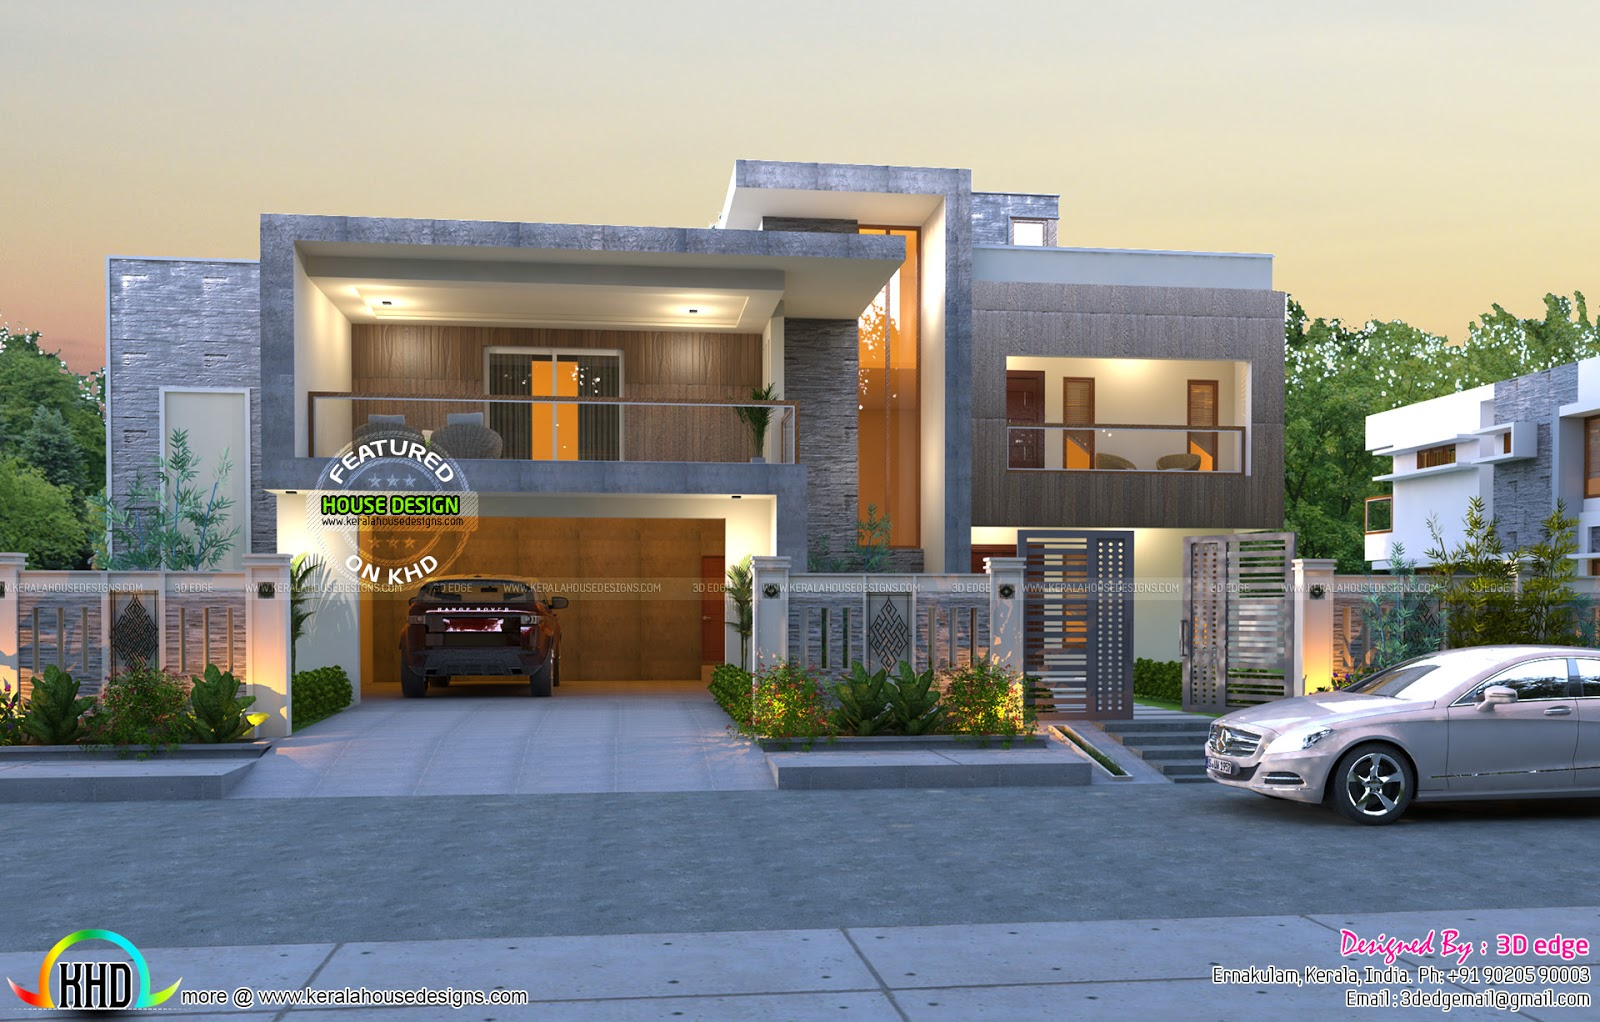 See floor plans read more please follow kerala home design - Design Style Contemporary Box Type See Blueprint Floor Plan Facility Details Read More Please Follow Kerala Home Design